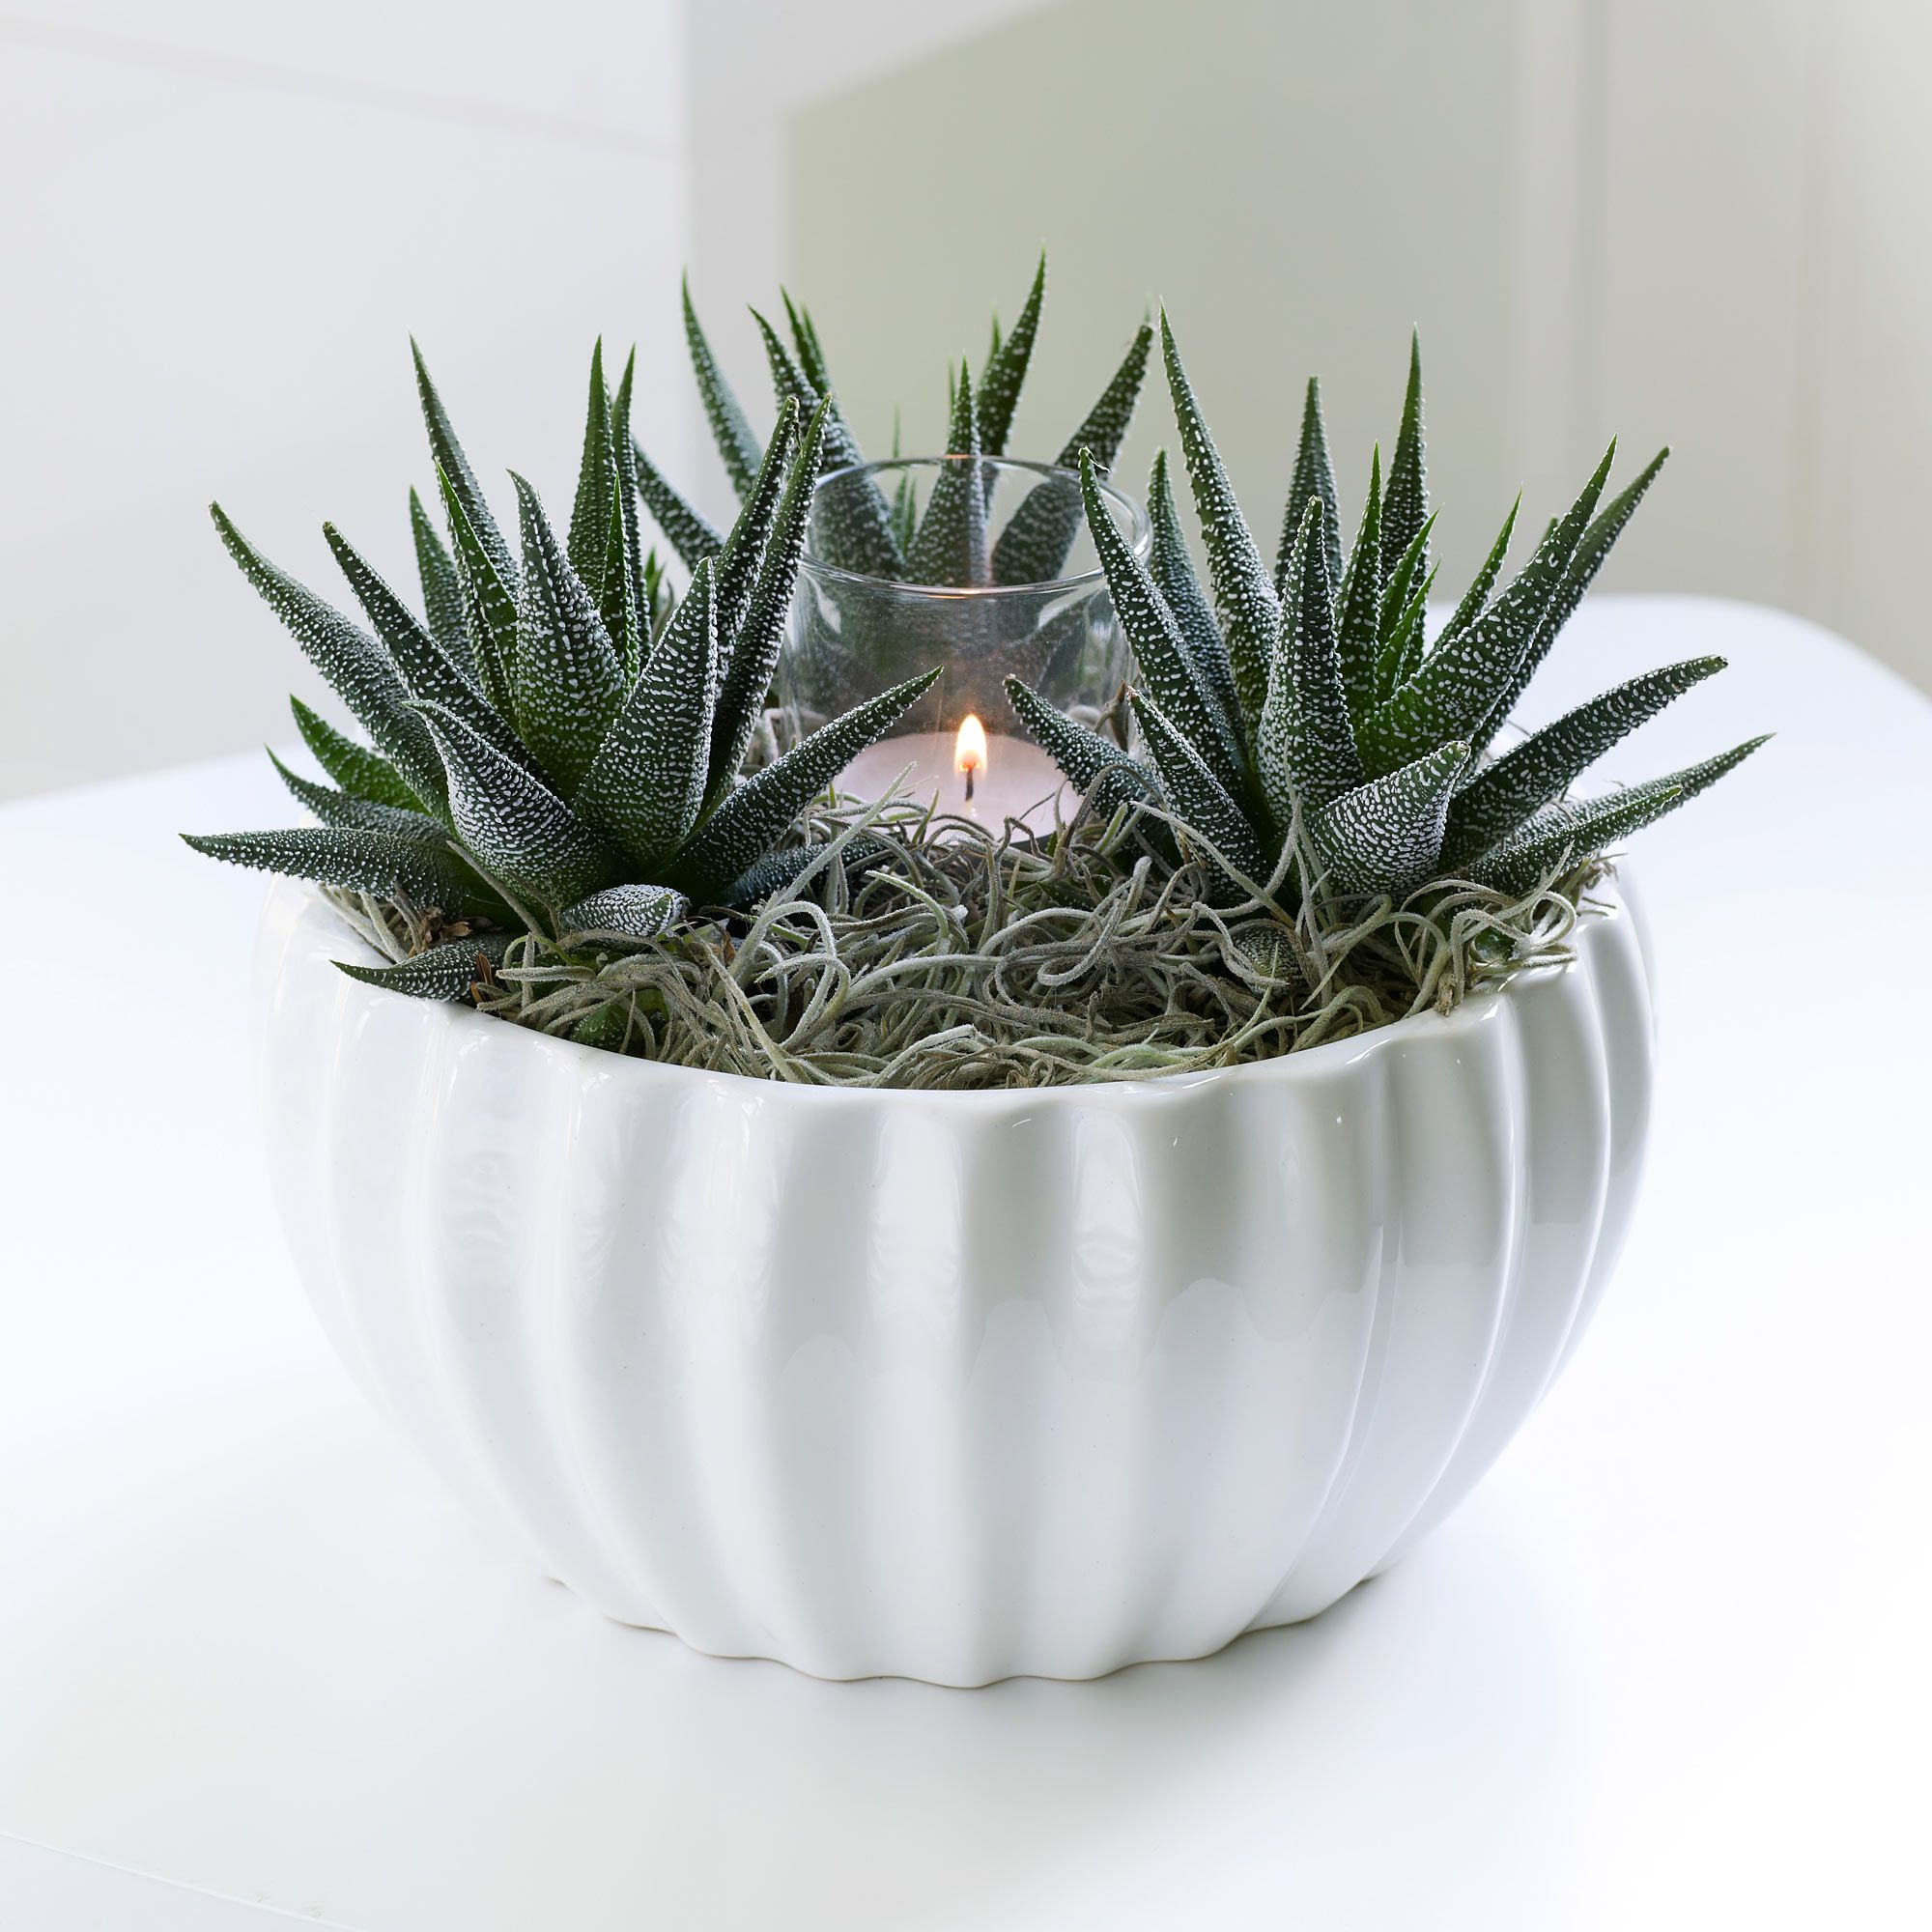 combining three white-specked succulent plants in a forest of grey, Gartengerate ideen